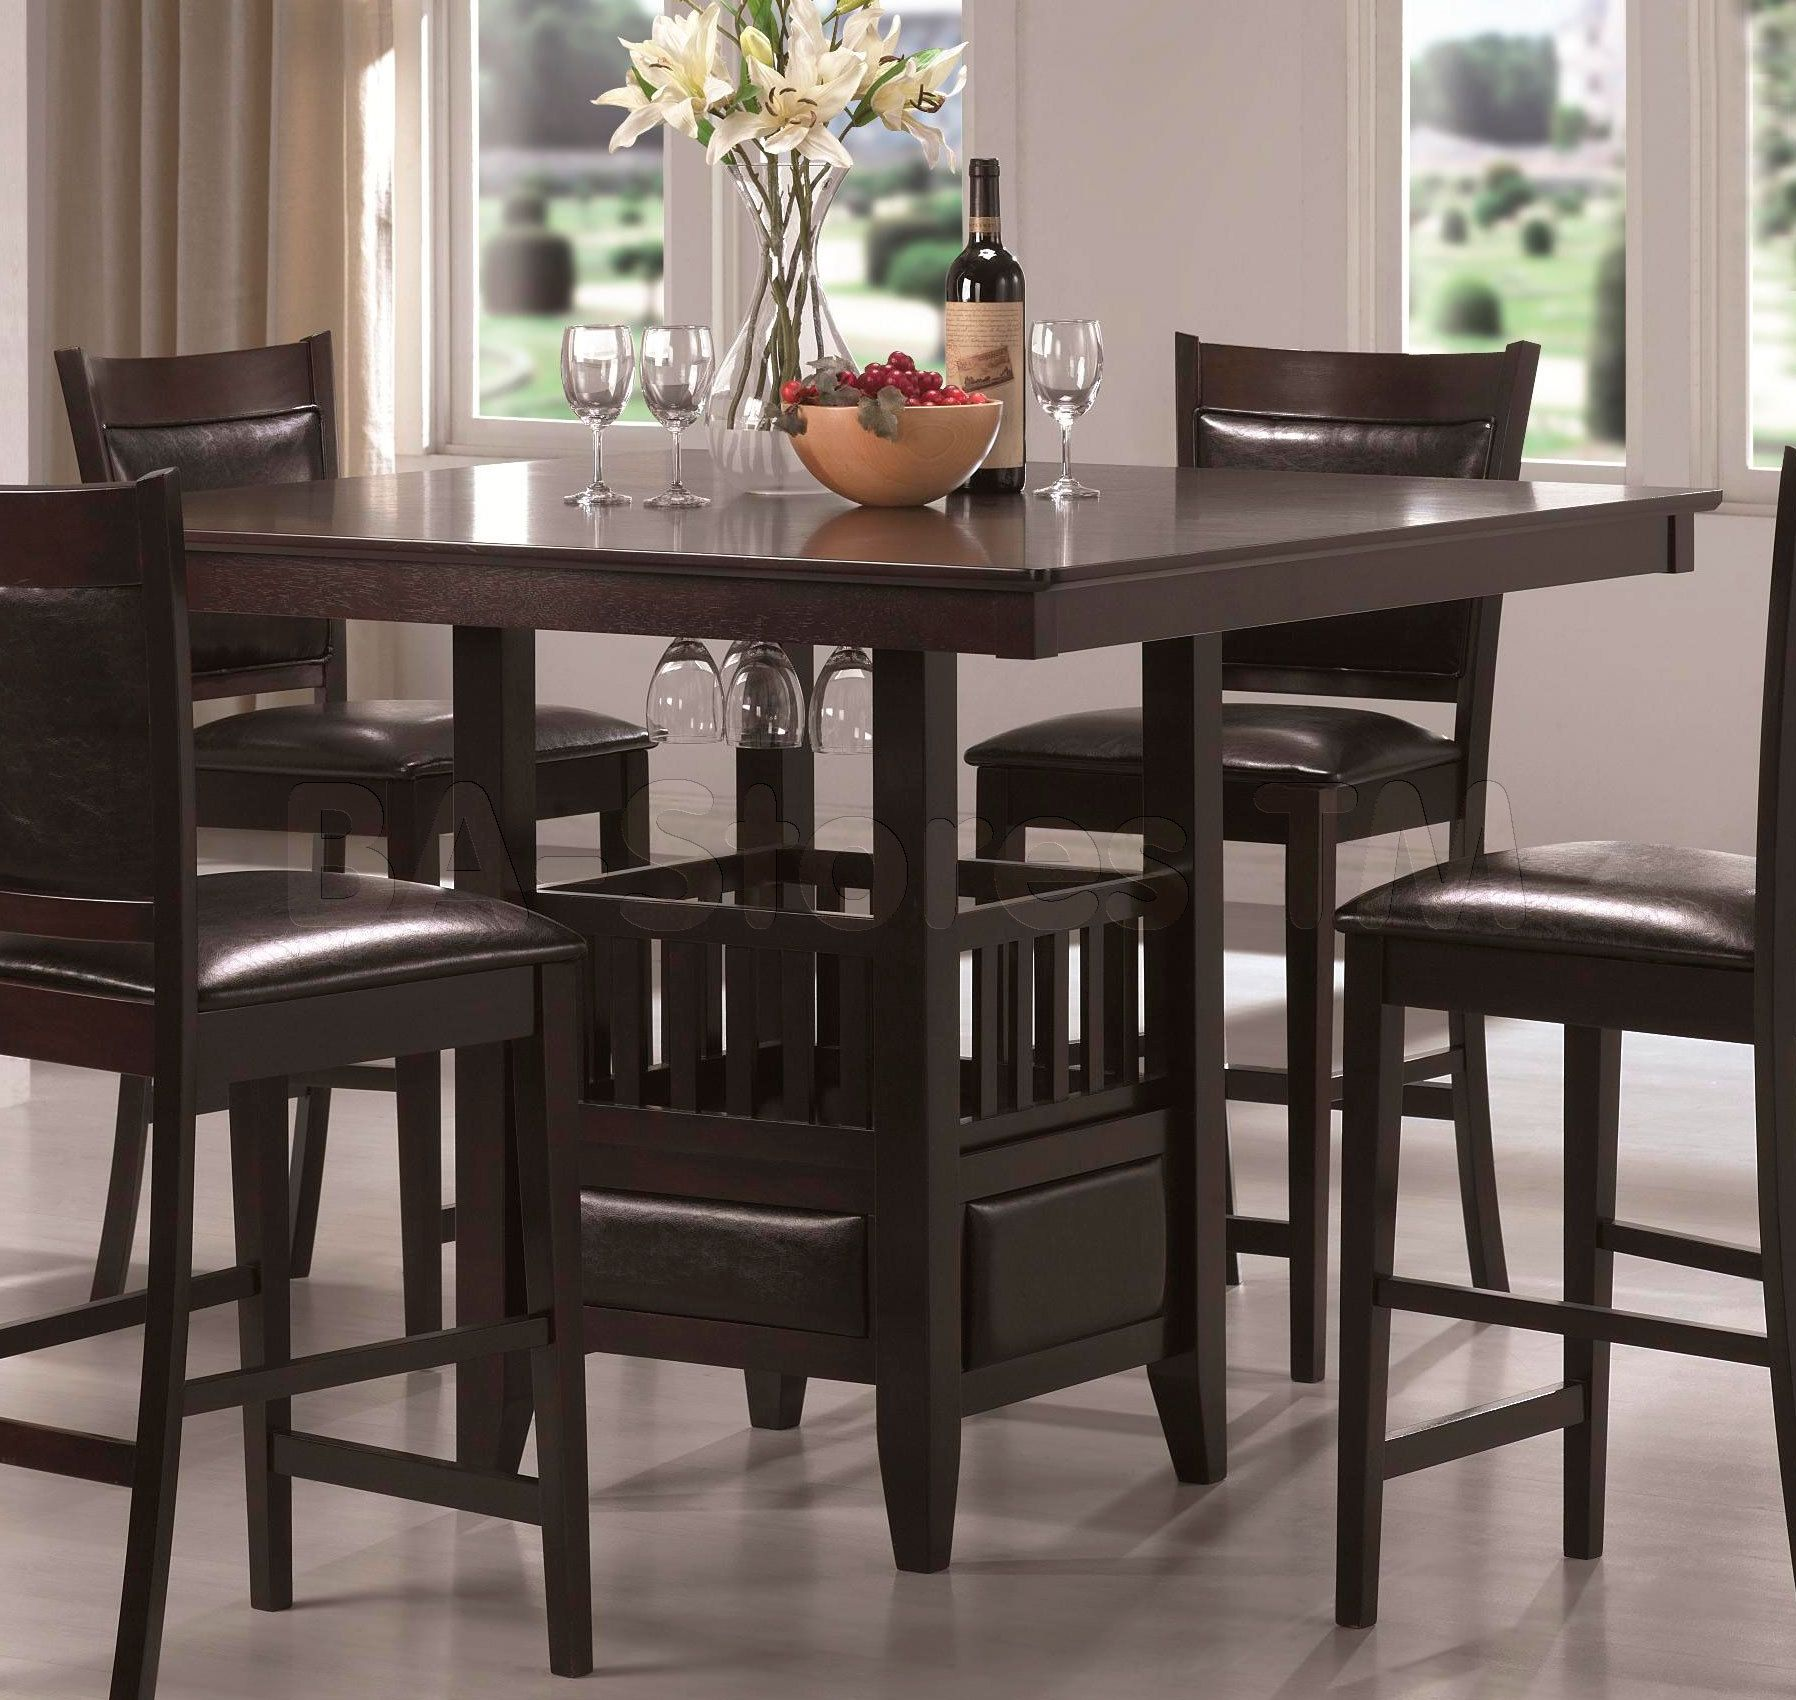 ideas xf inspiration astonishing kitchen bar height of and dining table counter stools tables with swivel island tall target